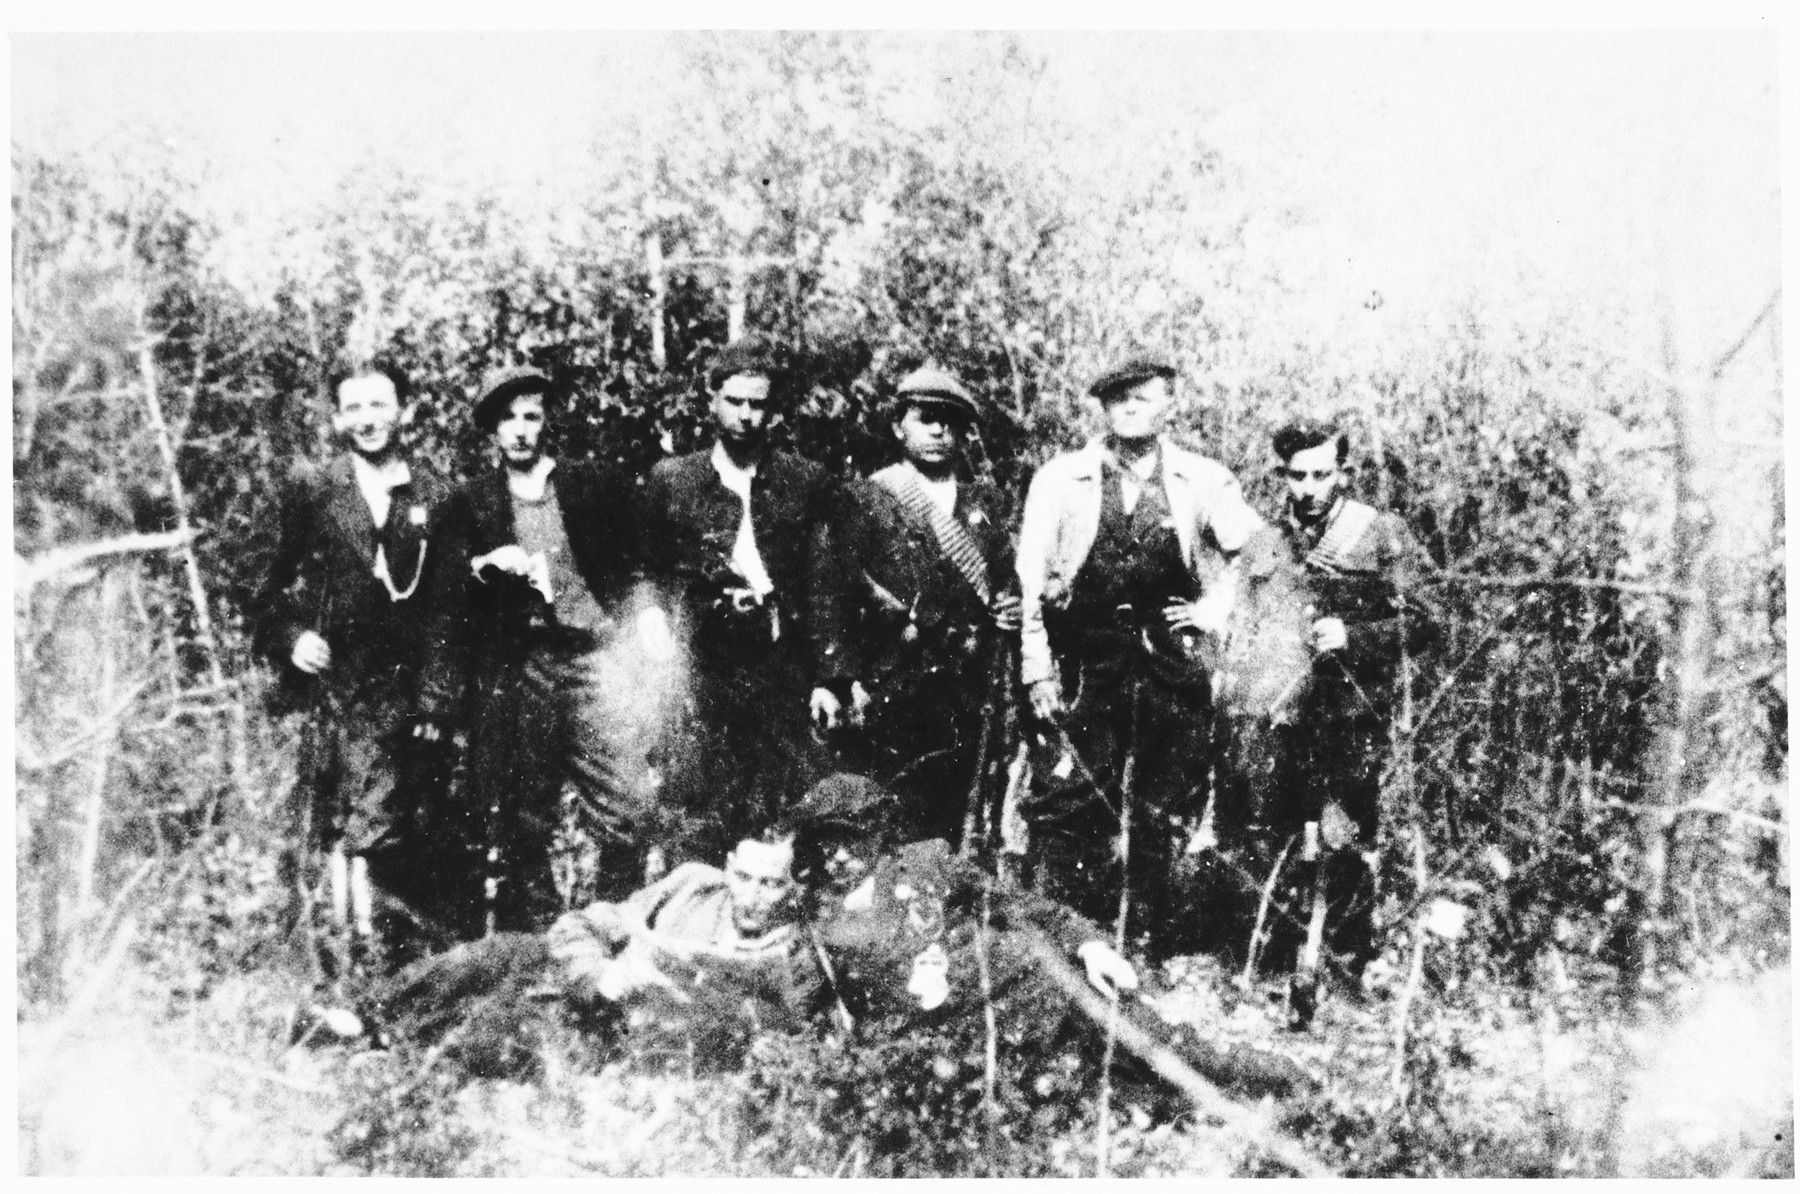 Group portrait of Jewish partisans in the forest.